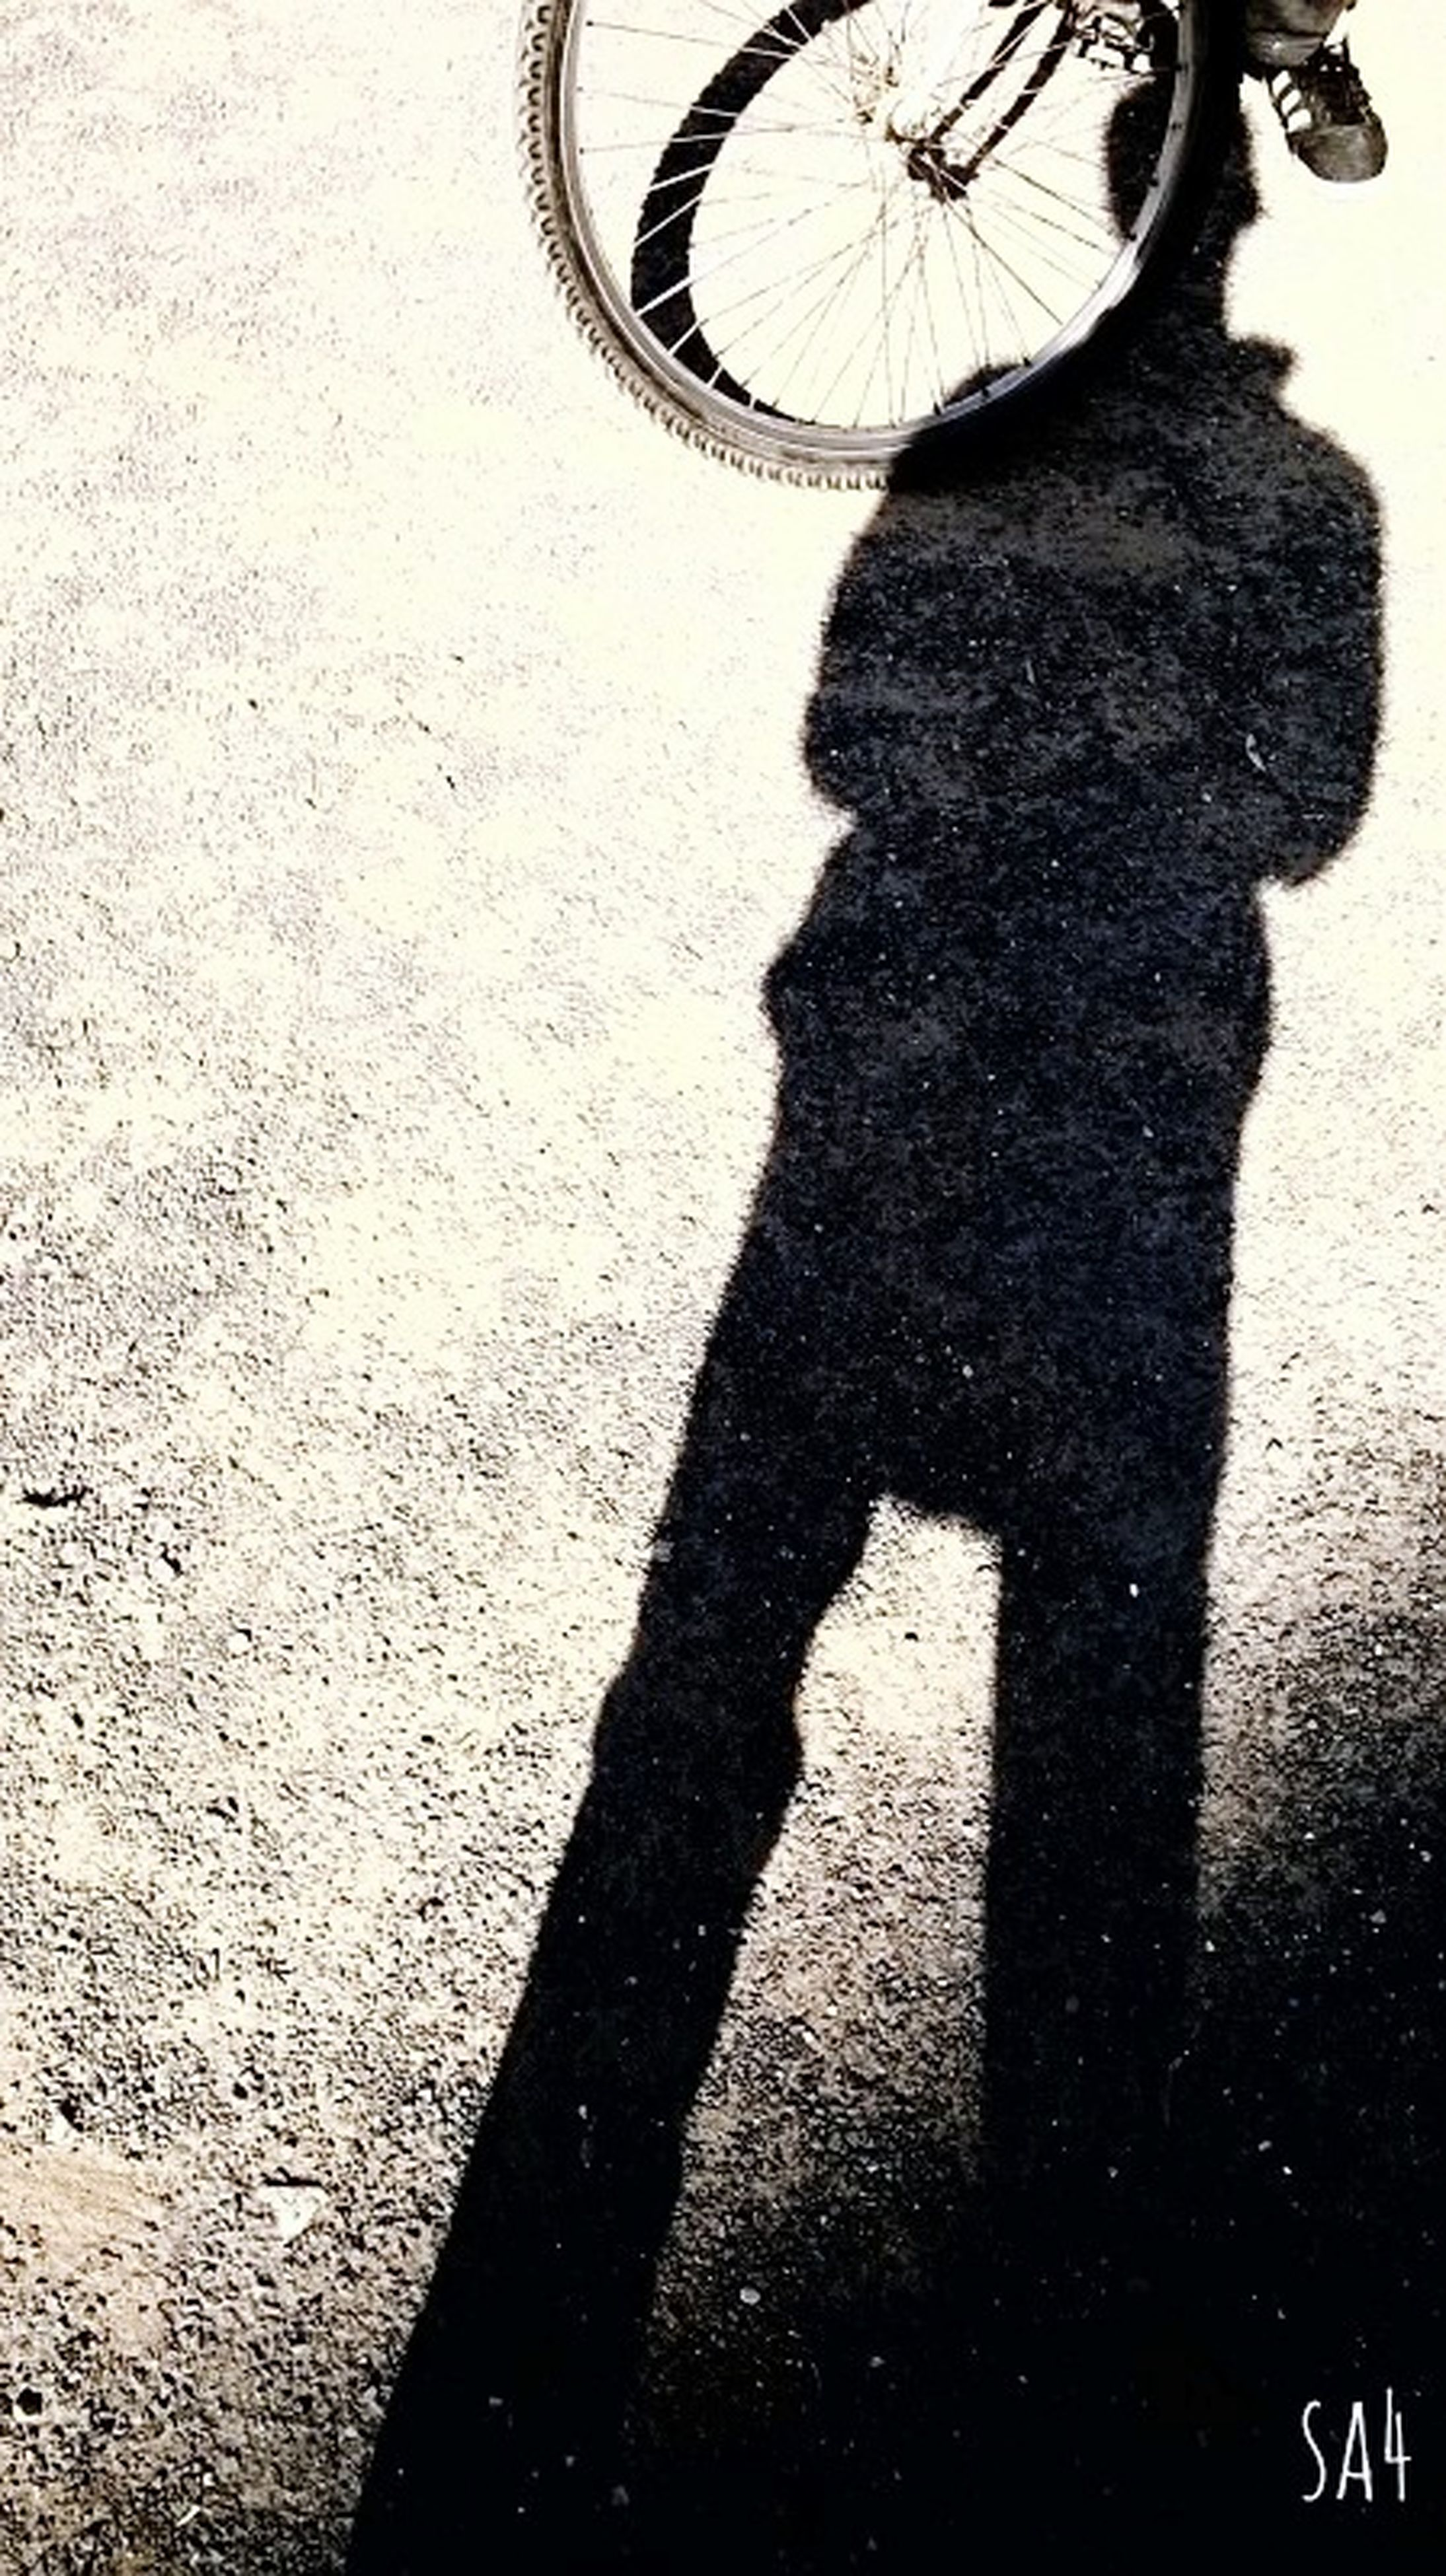 shadow, lifestyles, street, silhouette, focus on shadow, men, leisure activity, sunlight, bicycle, unrecognizable person, road, walking, standing, transportation, high angle view, outline, person, outdoors